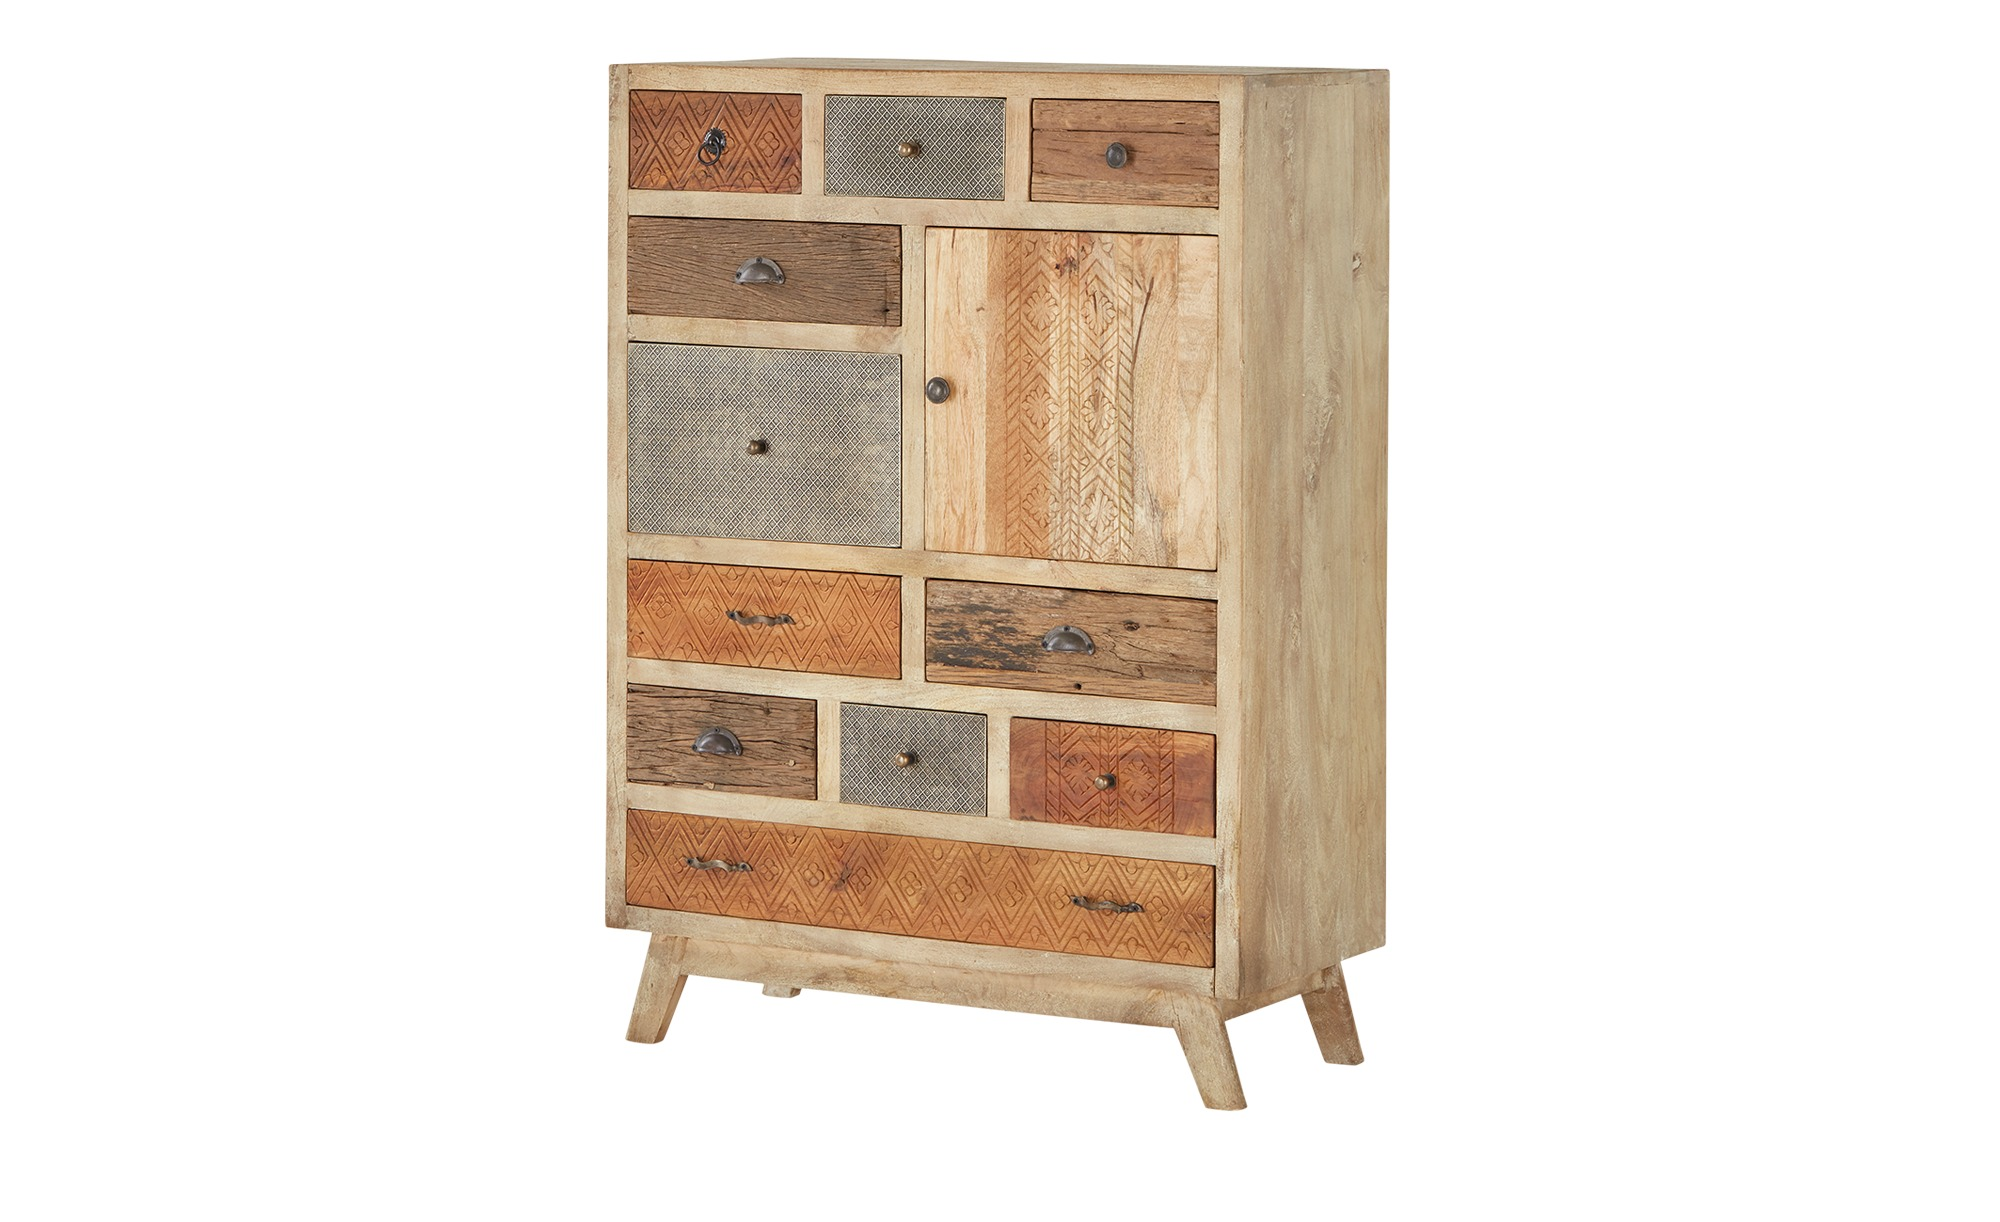 Highboard  Kona ¦ Maße (cm): B: 90 H: 125 T: 40 Kommoden & Sideboards > Highboards - Höffner